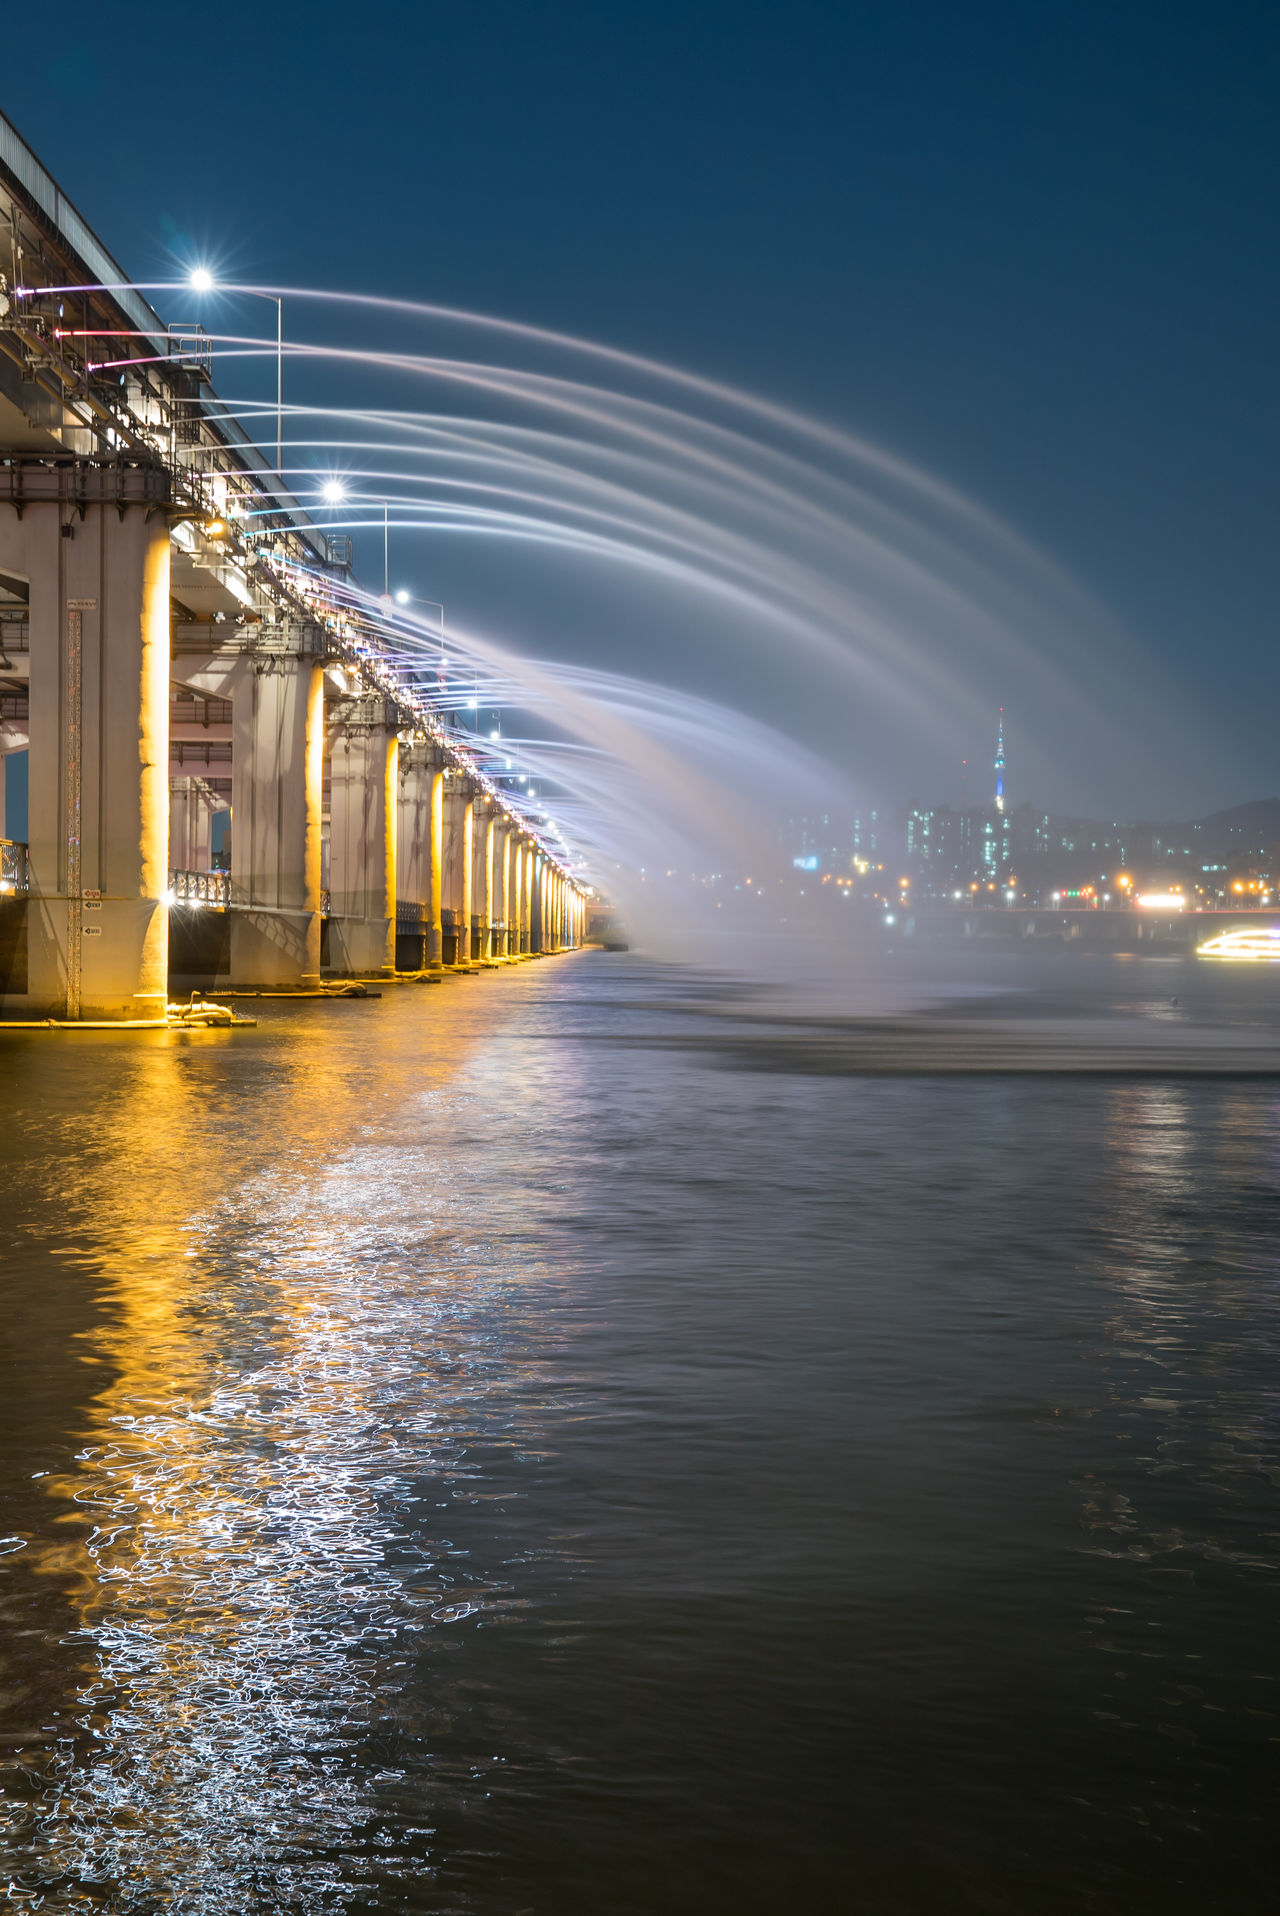 Banpo Bridge with Rainbow Fountain show at Seoul Architecture Banpo Banpo Bridge Banpo Daegyo Bridge Built Structure City Fountain Illuminated No People Outdoors Seoul Sky South Korea Water